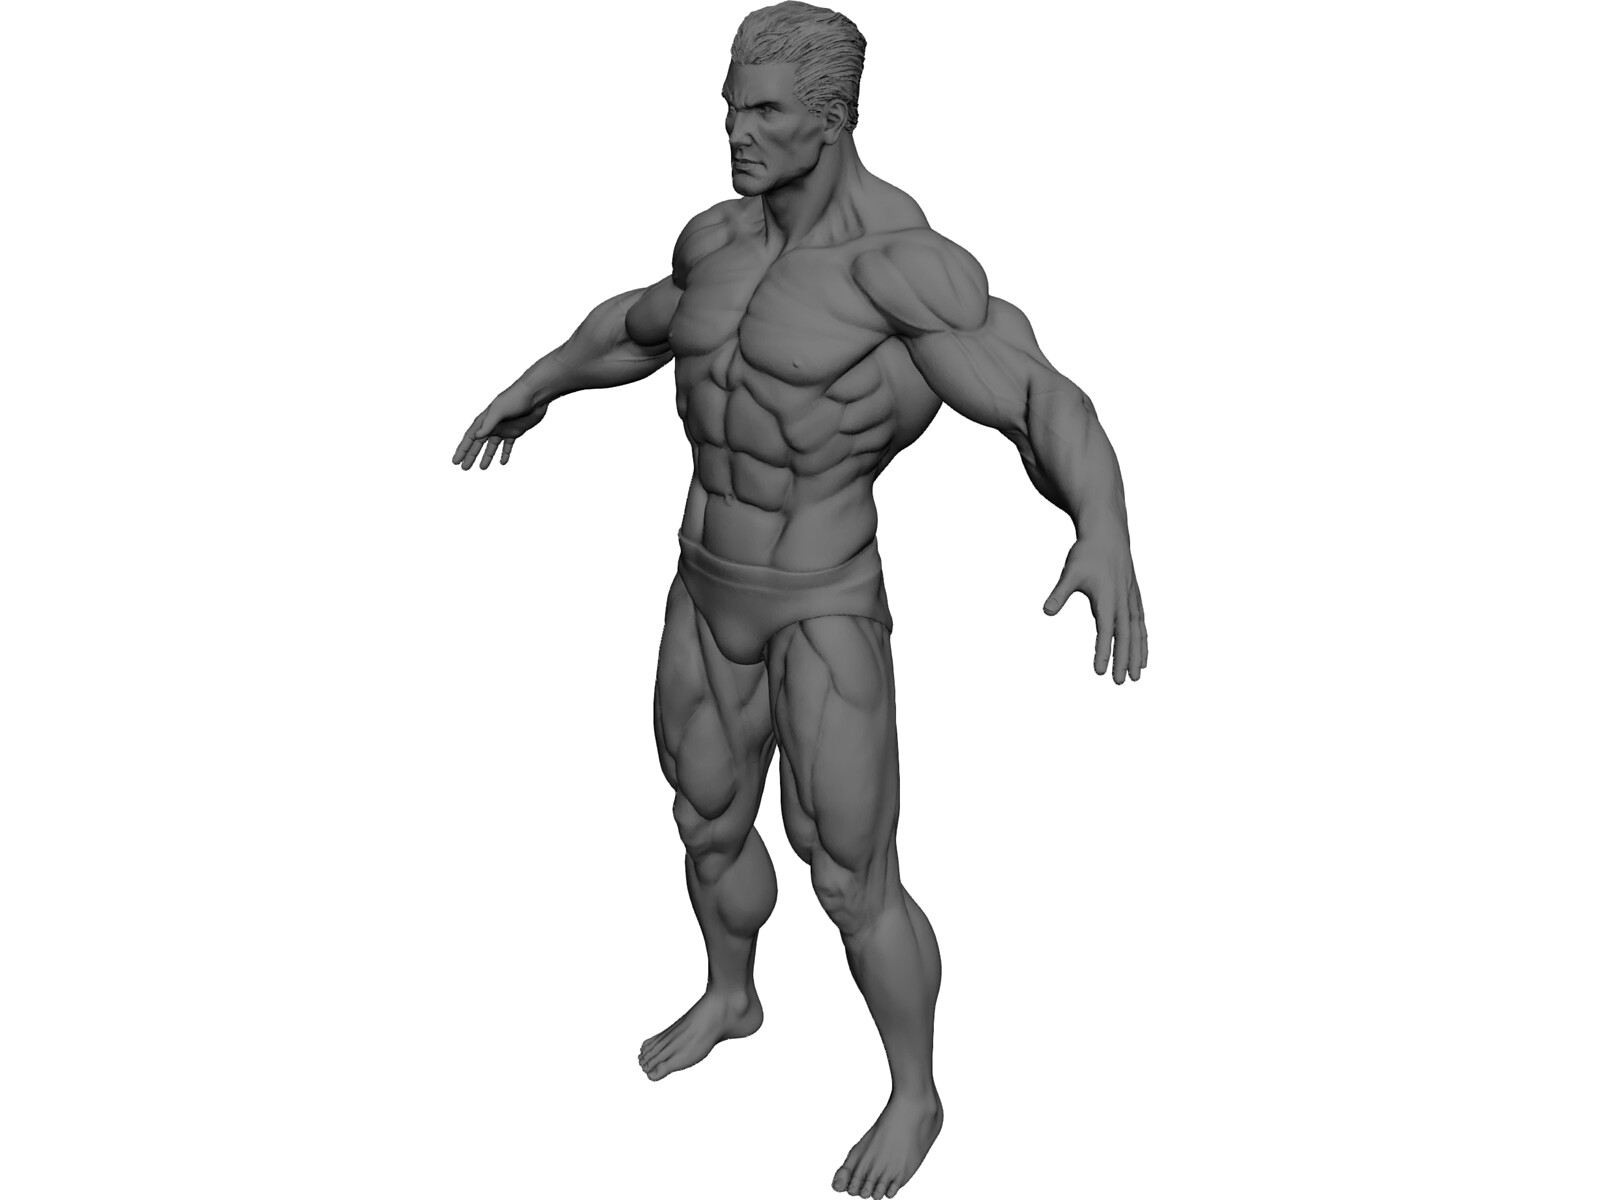 super human 3d model download - 3d cad browser, Muscles